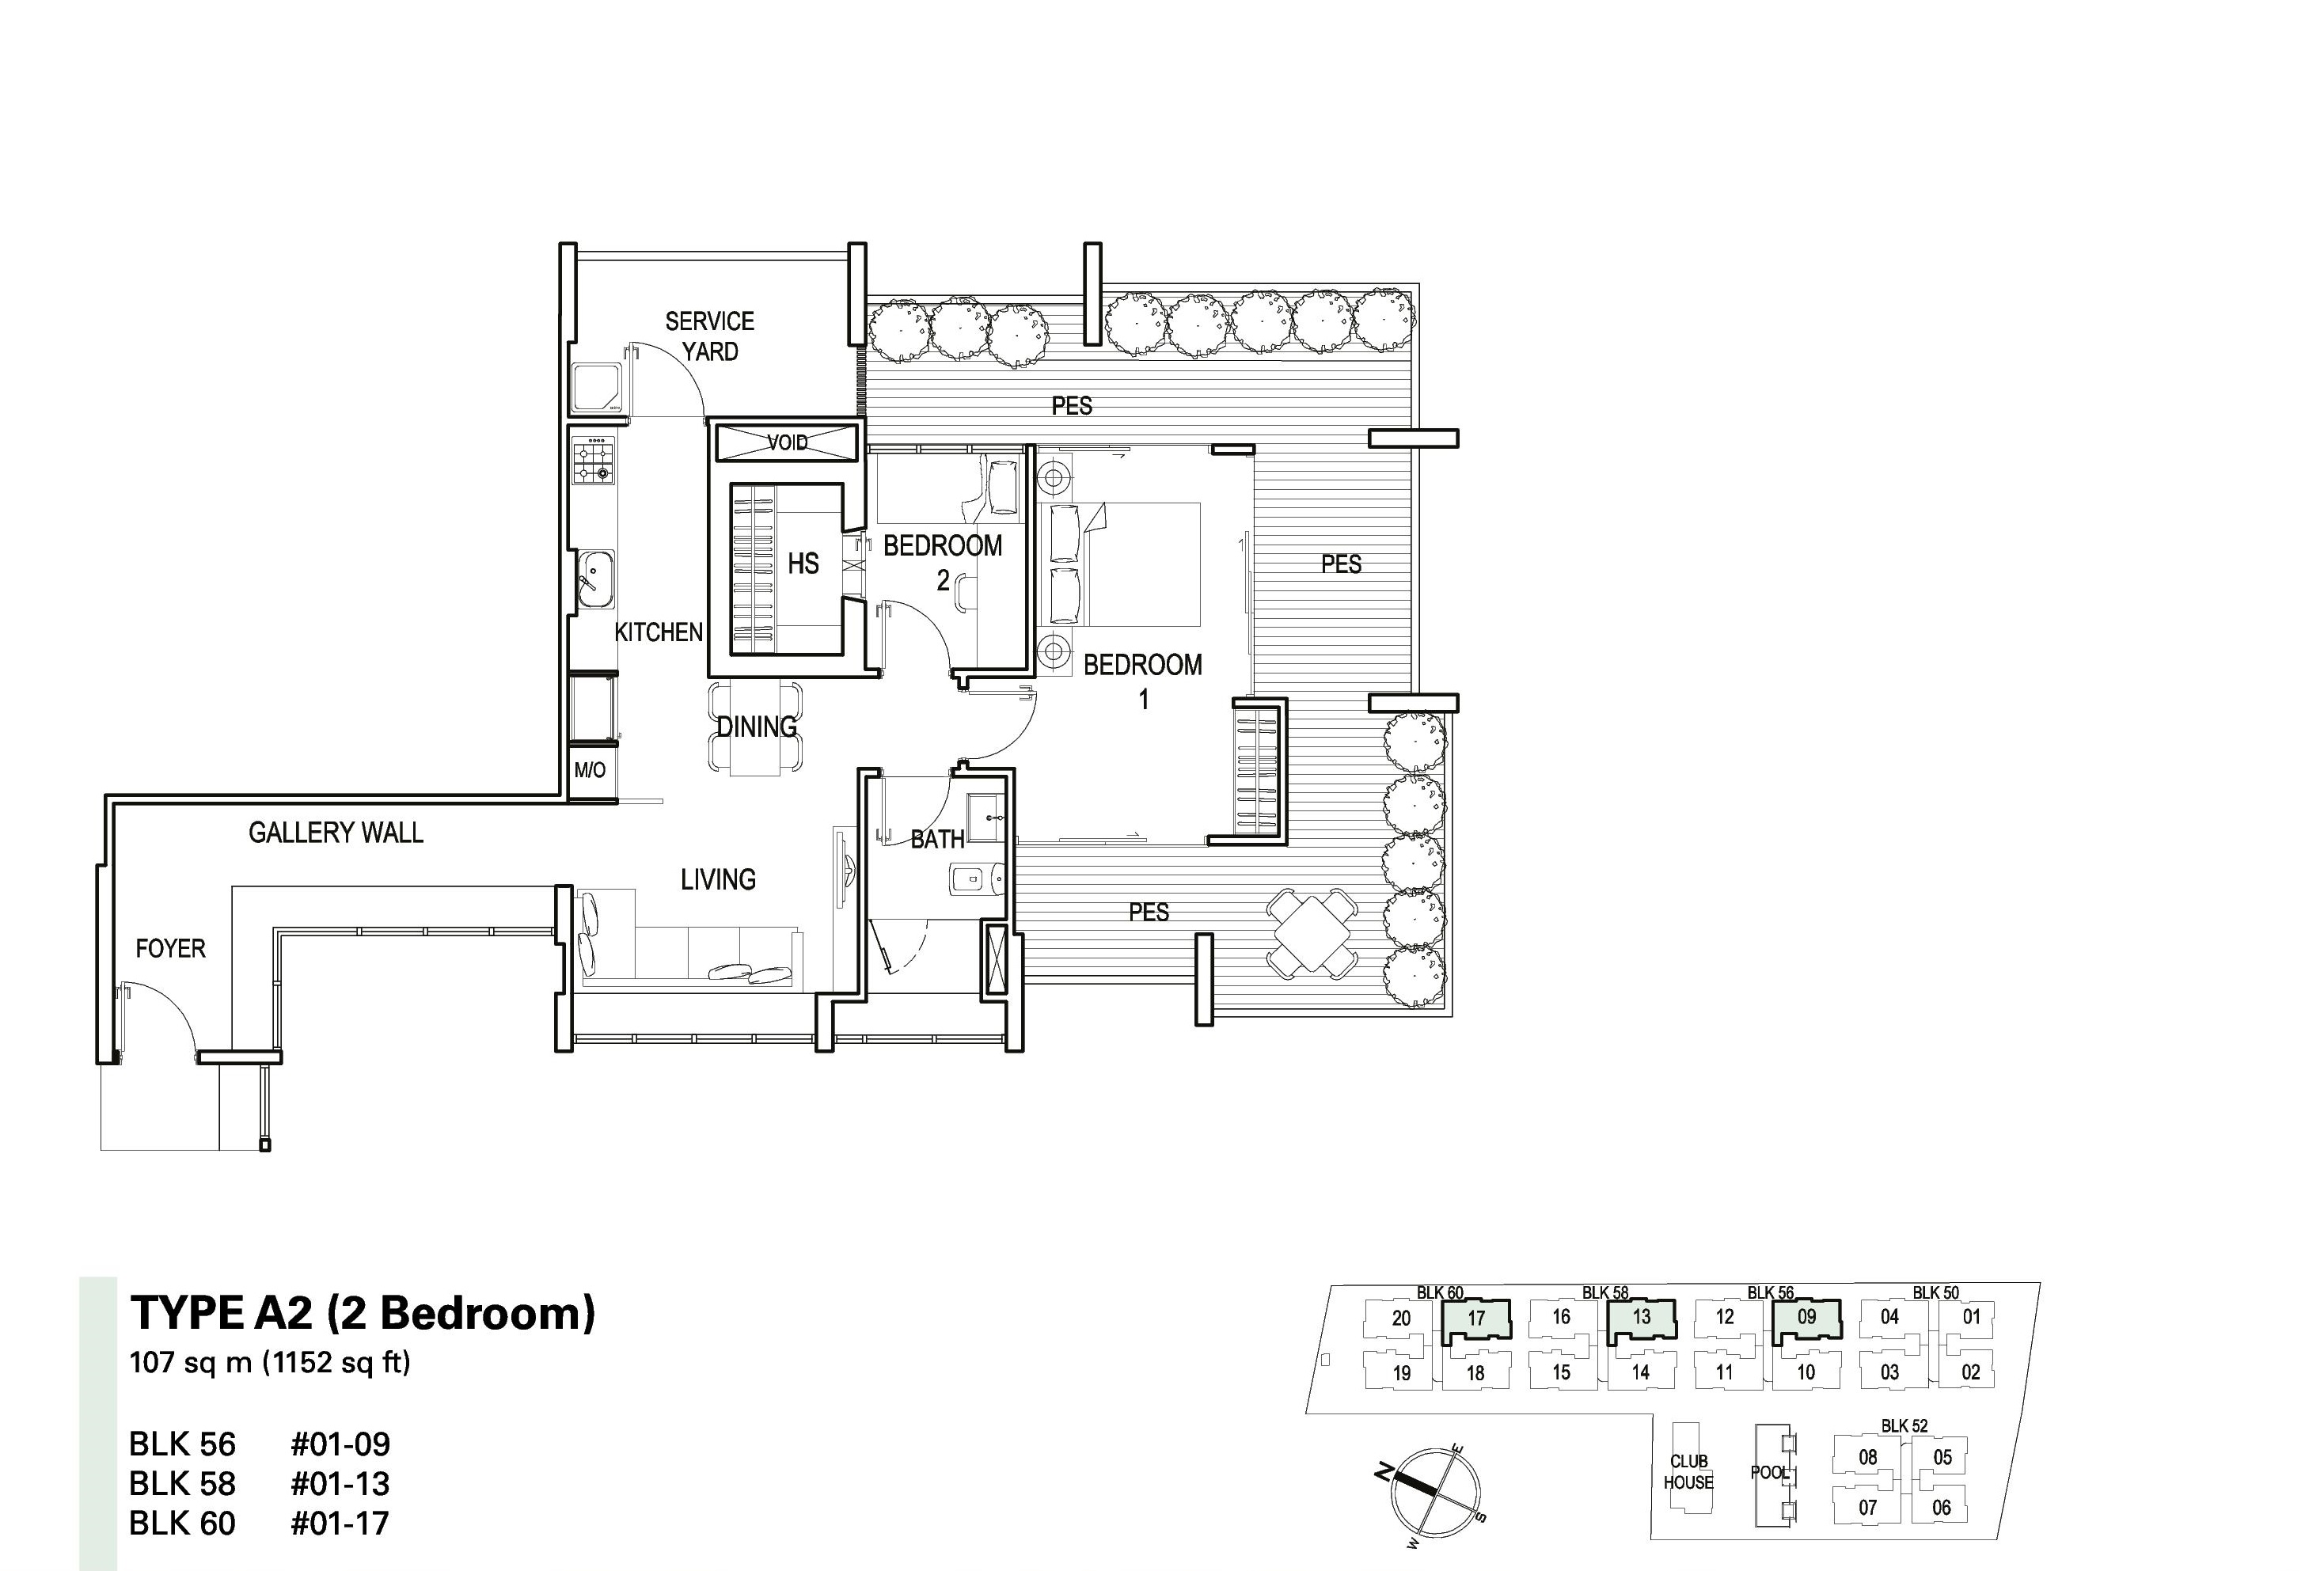 St Patrick's Residences 2 Bedroom Type A2 Floor Plans